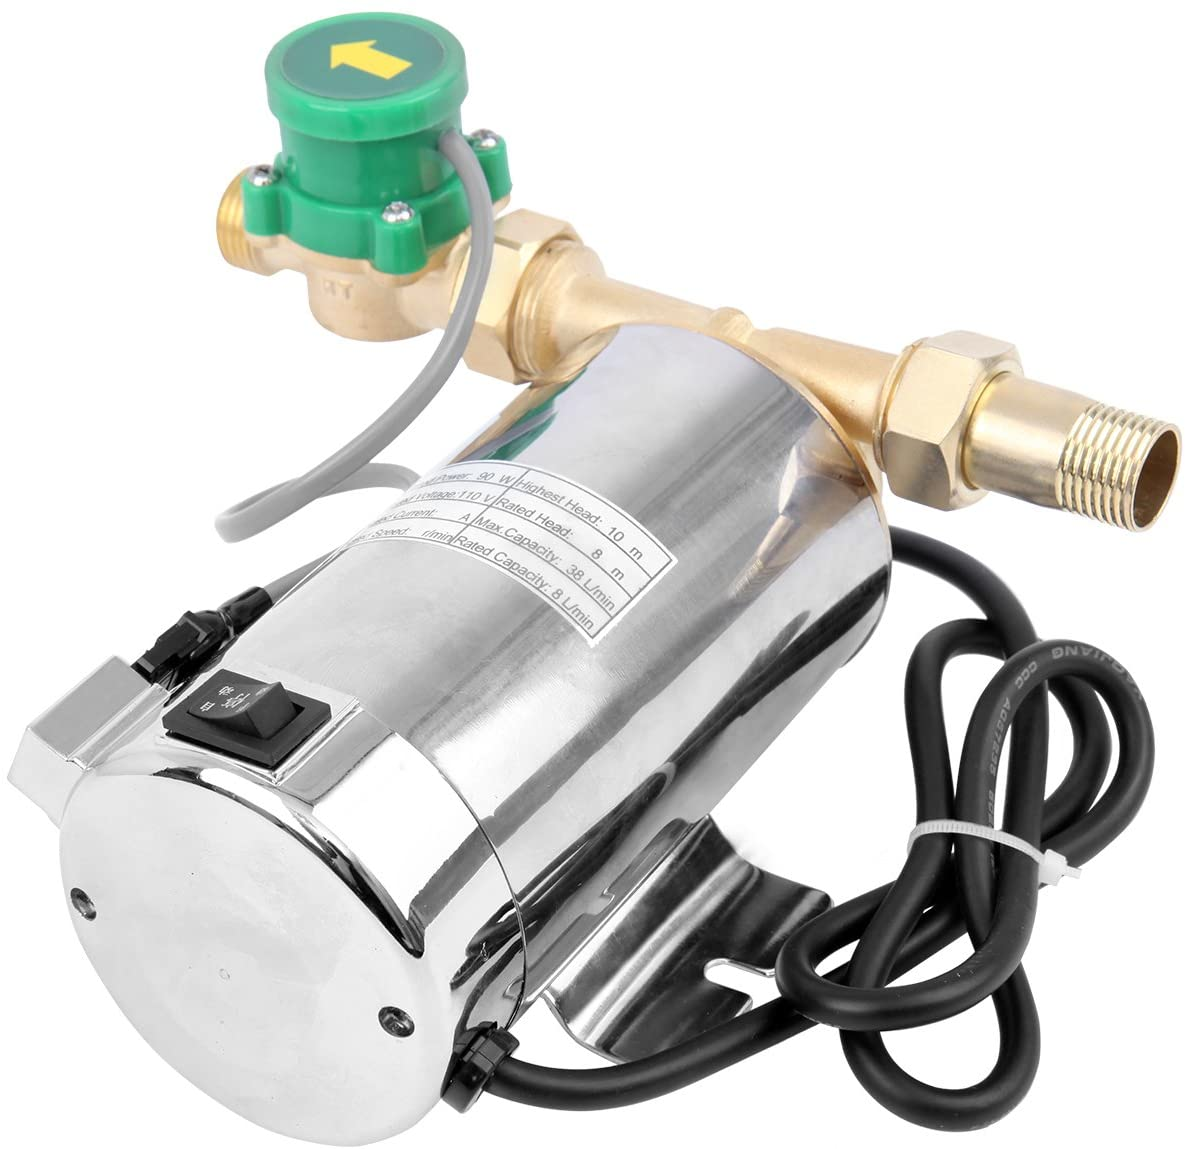 TryE 110V 90W Water Pressure Booster Pump 60HZ 87PSI Automatic Shower Booster Pump with Water Flow Switch Household